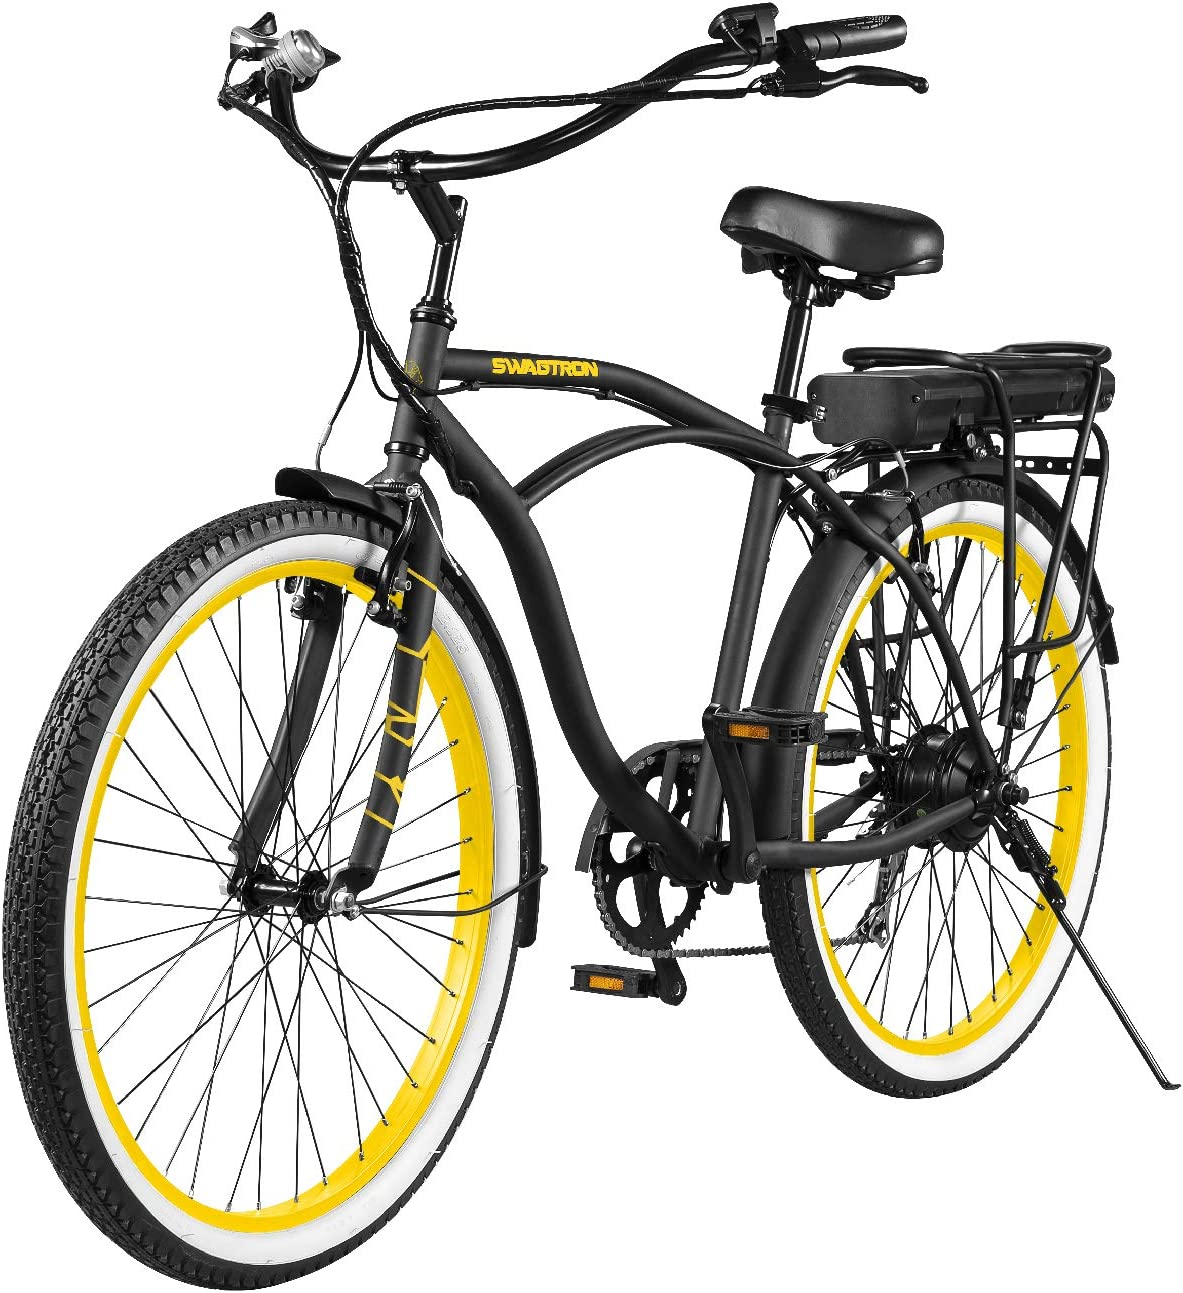 Swagtron EB-11 City Electric Cruise Bicycle